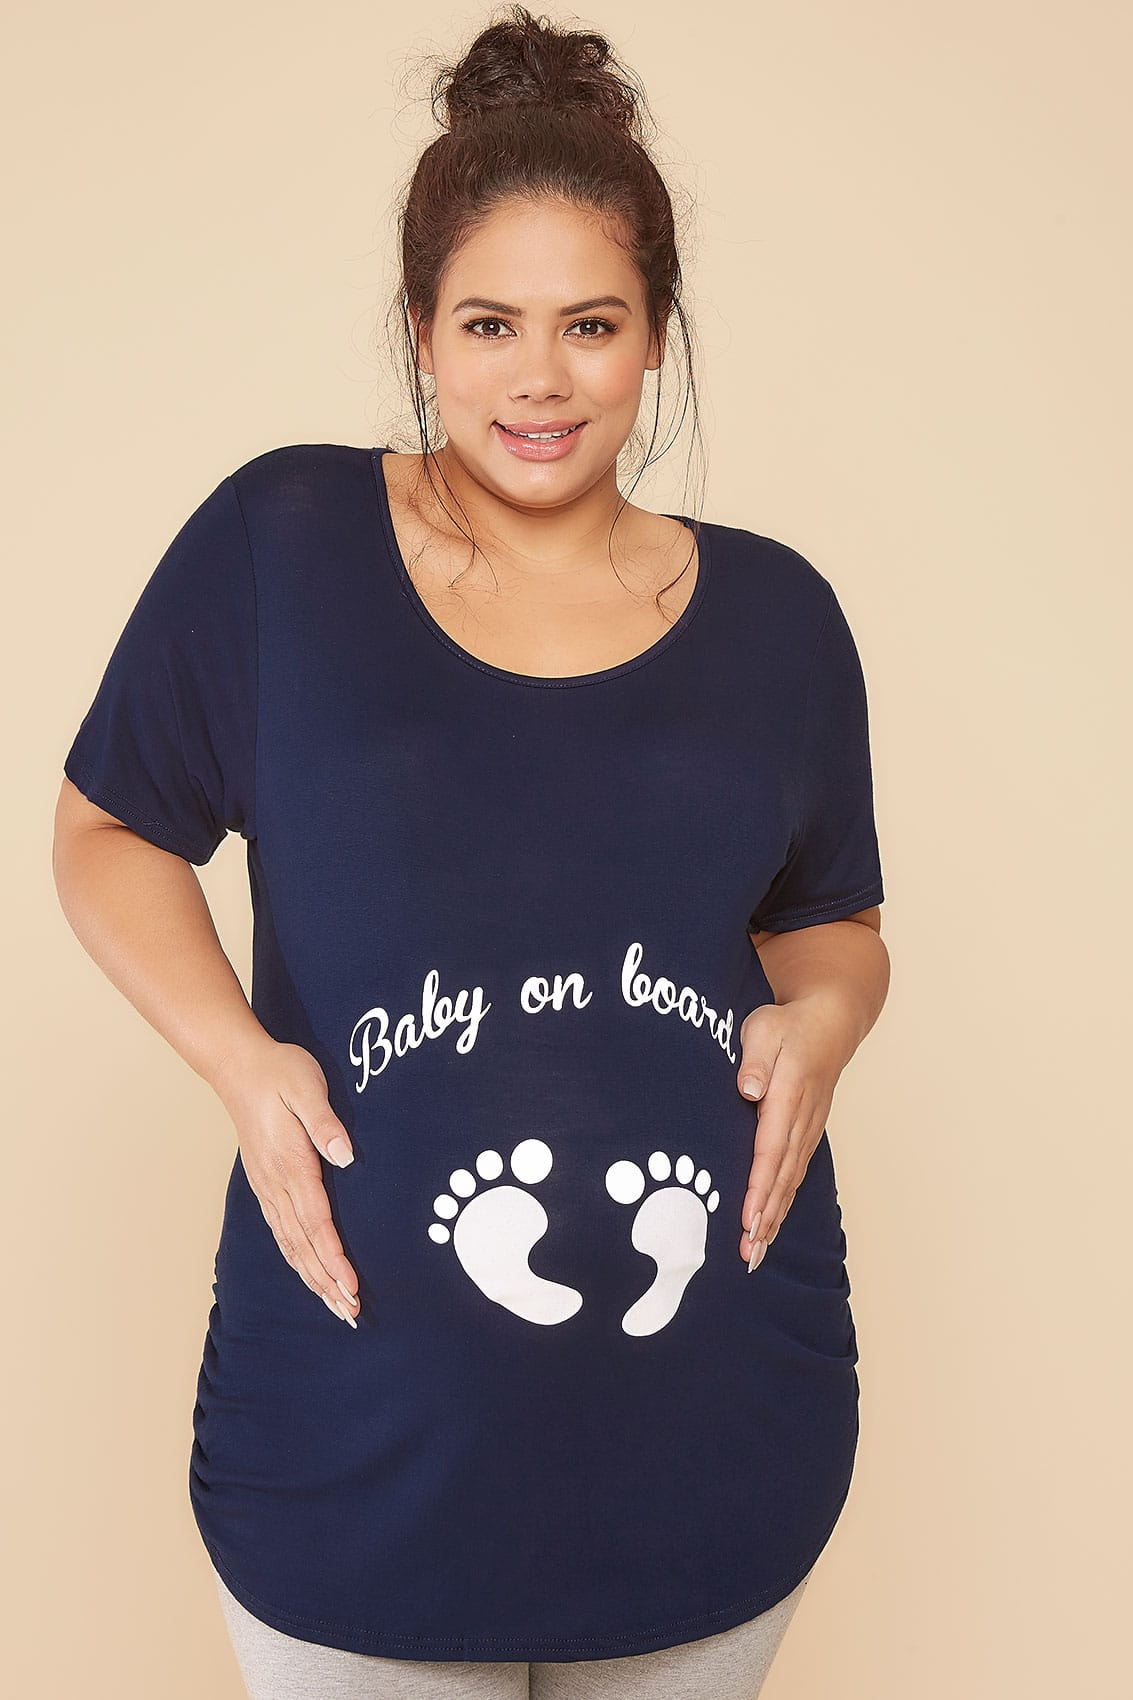 Bump It Up Maternity Navy Top With White Glitter Baby On